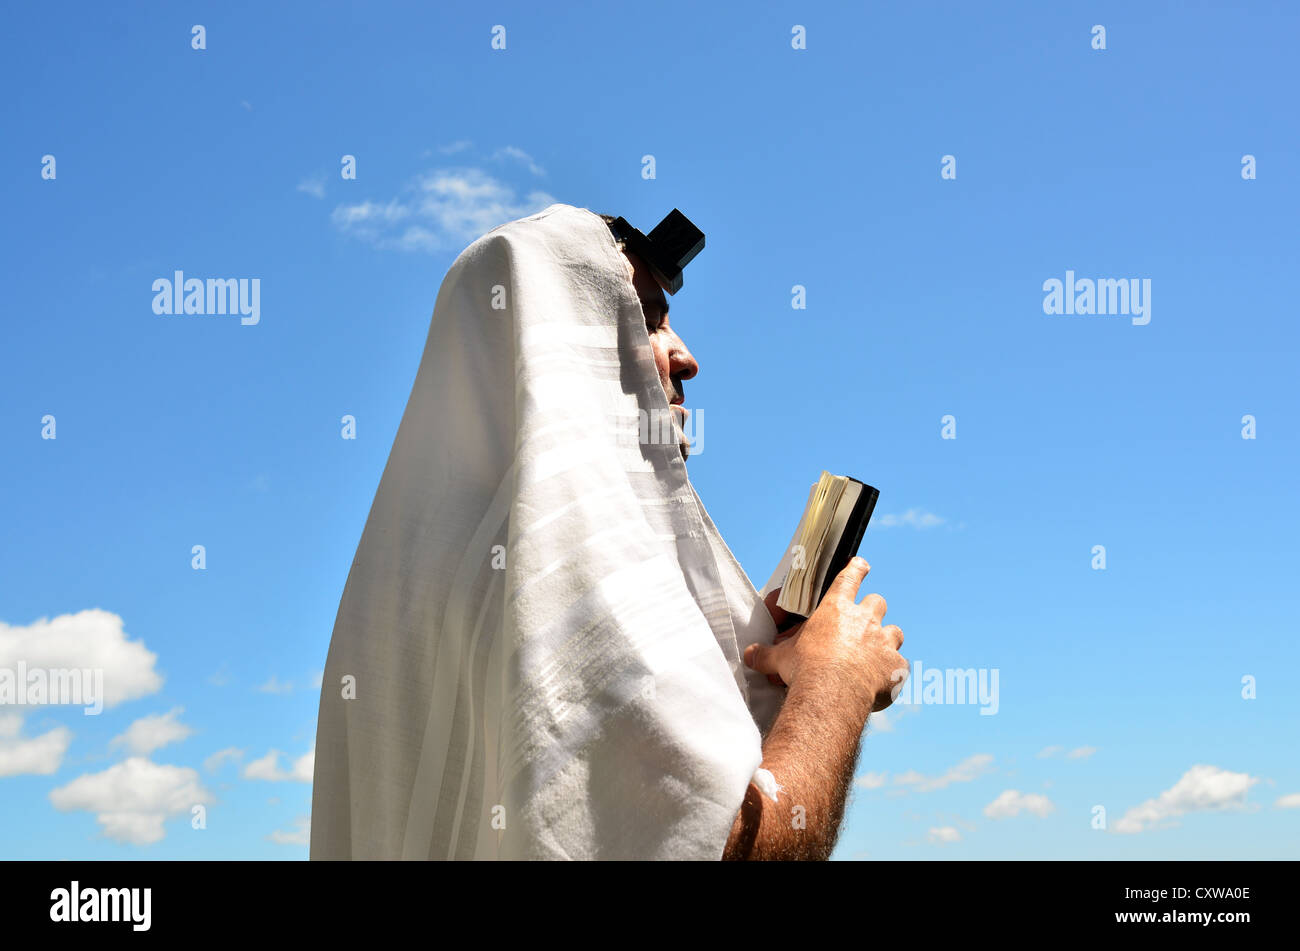 A Jewish man wearing Tallit and Tefillin read from the Torah book pray to God under a blue sky with sheep clouds. - Stock Image